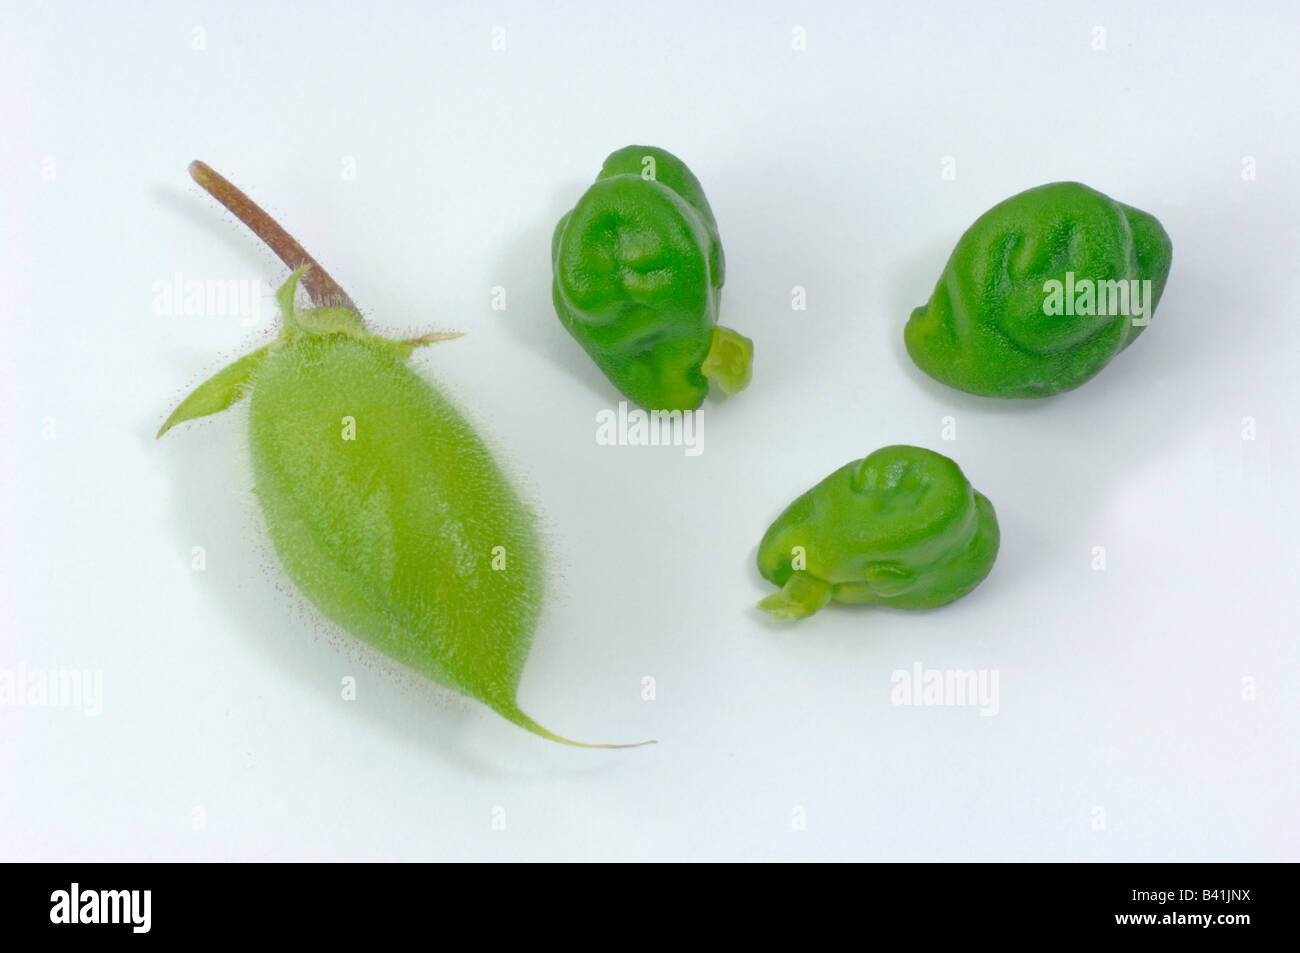 Chick Pea, Chickpea (Cicer arietinum) seedpods and seeds studio picture Stock Photo